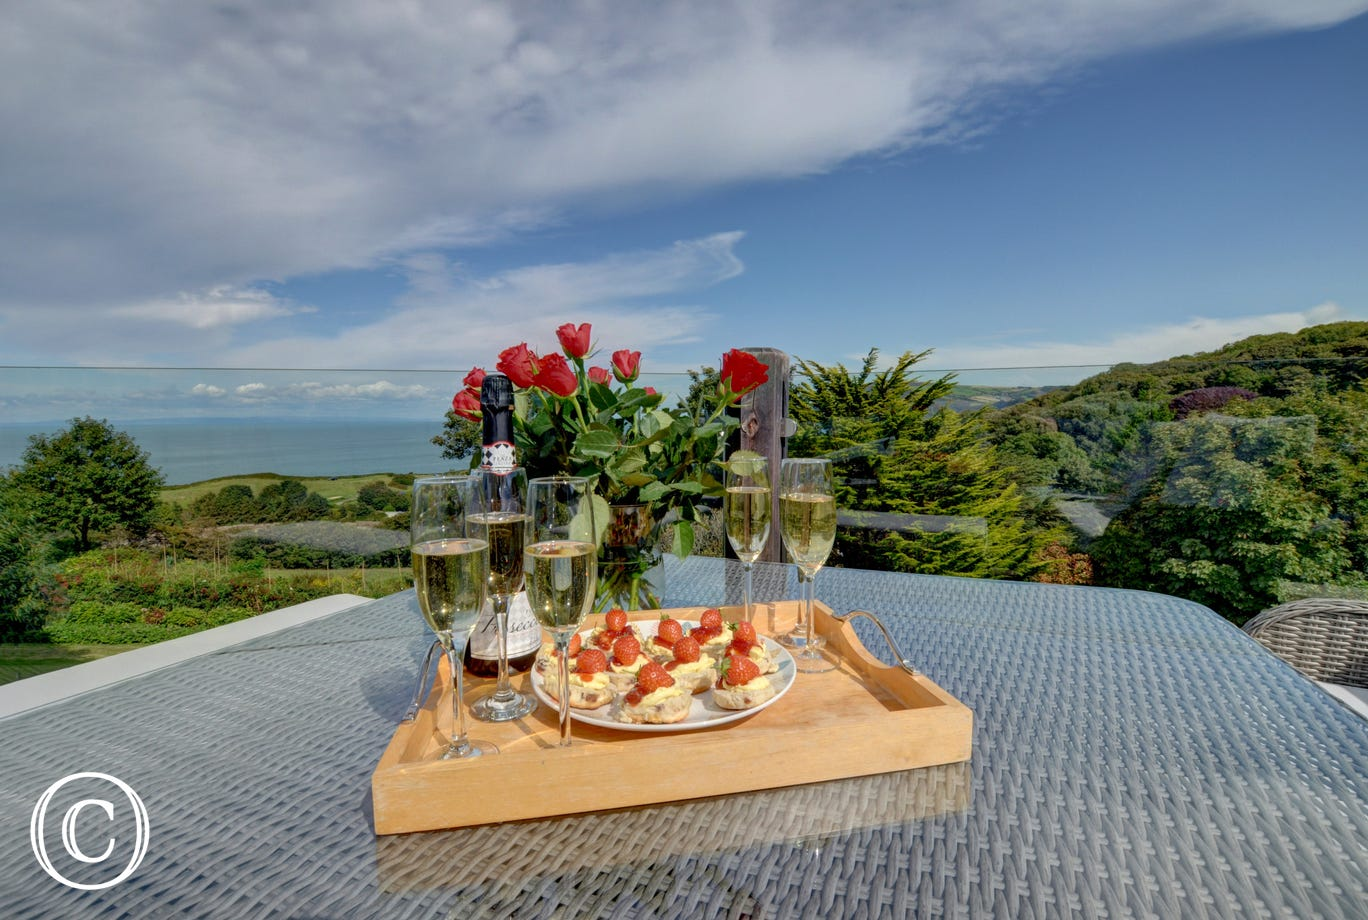 What a perfect place to enjoy a cream tea and a glass of fizz!